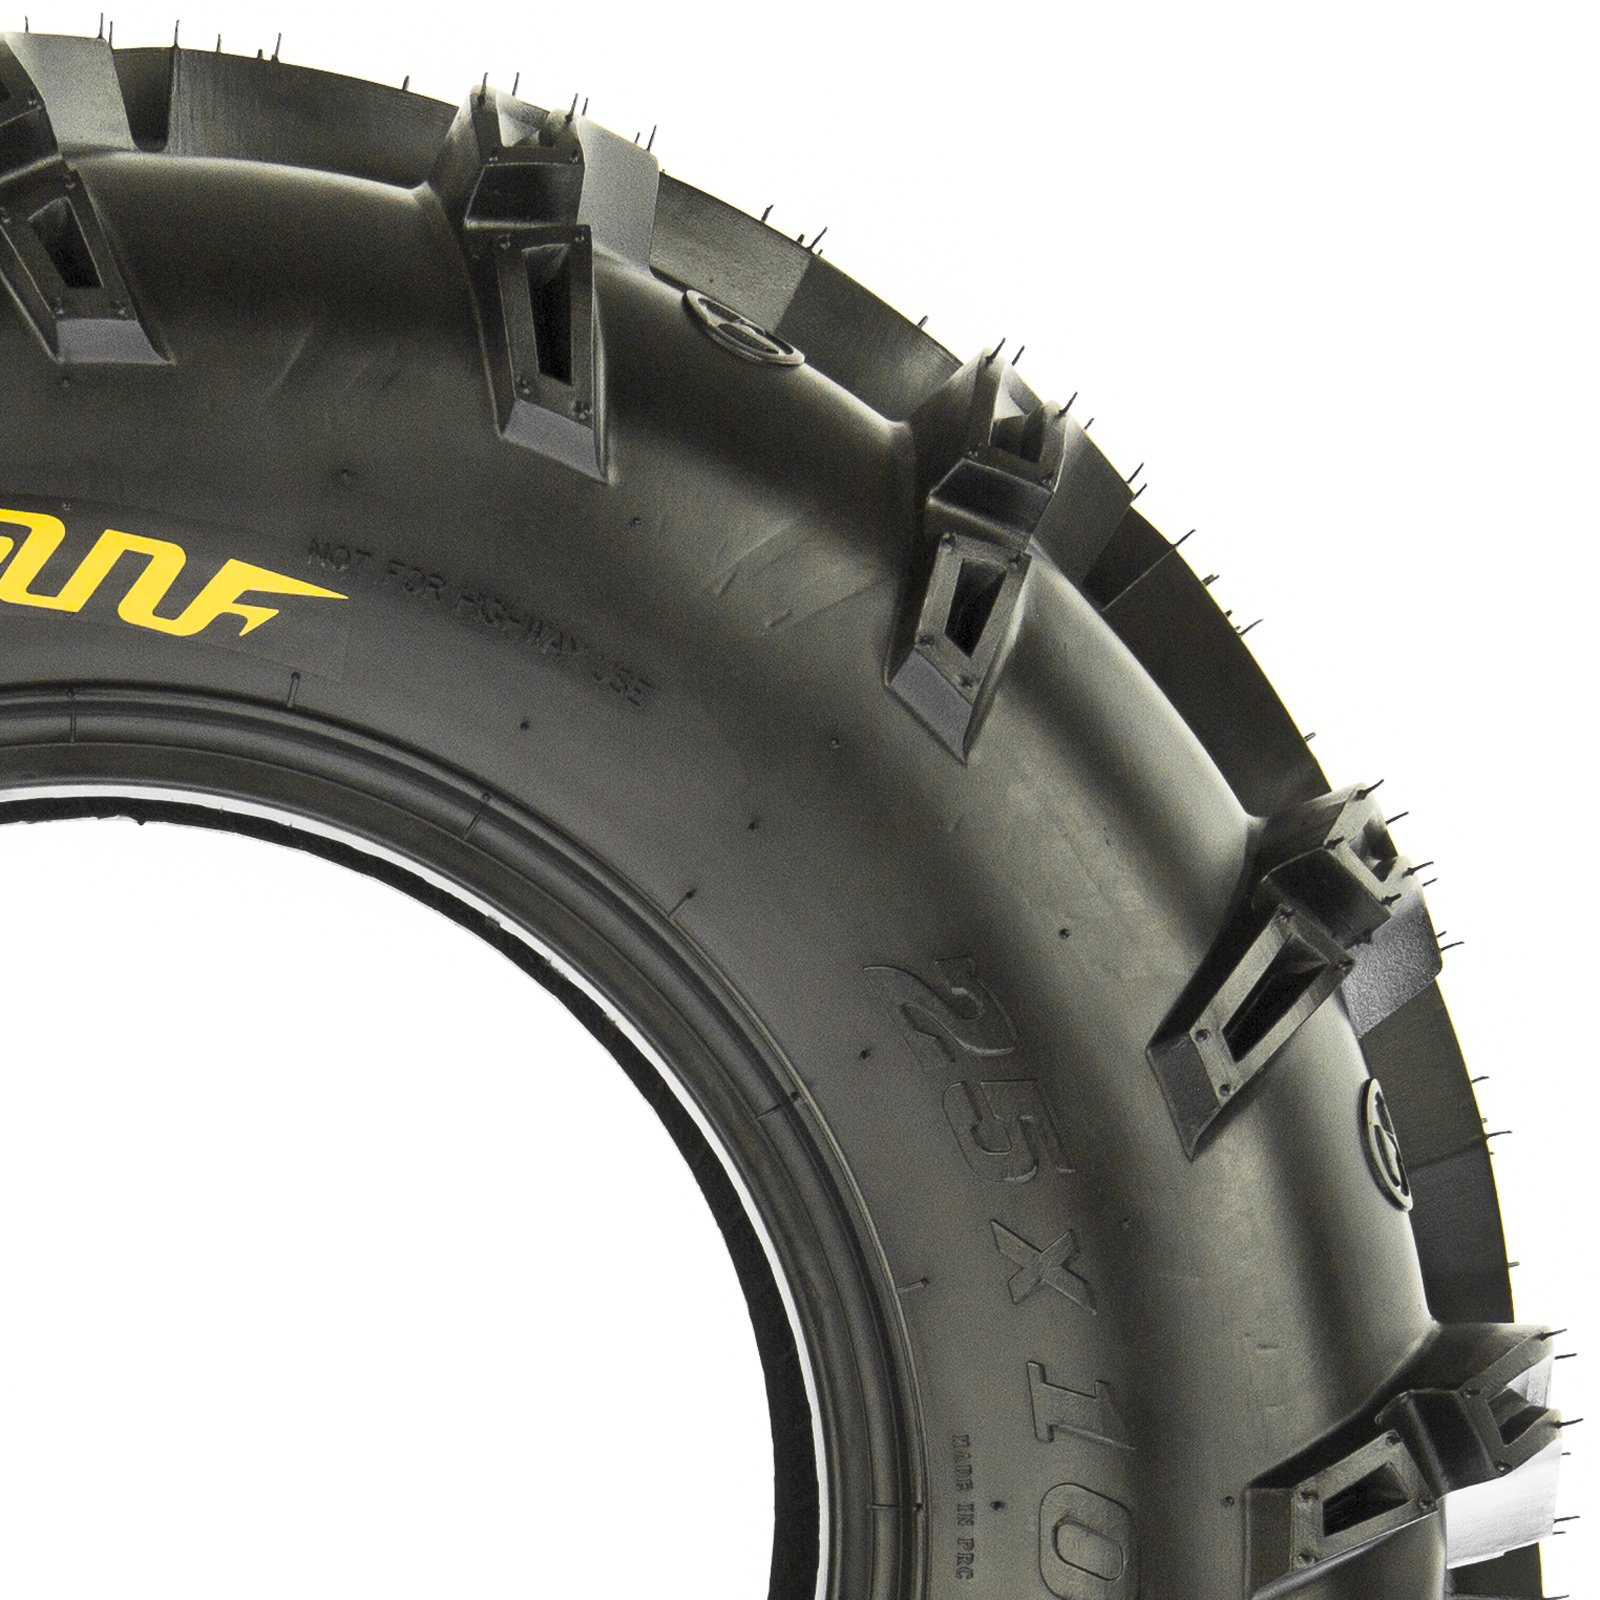 SunF A050 AT Mud & Trail 25x11-10 ATV UTV Tires, 6PR, Tubeless by SunF (Image #9)